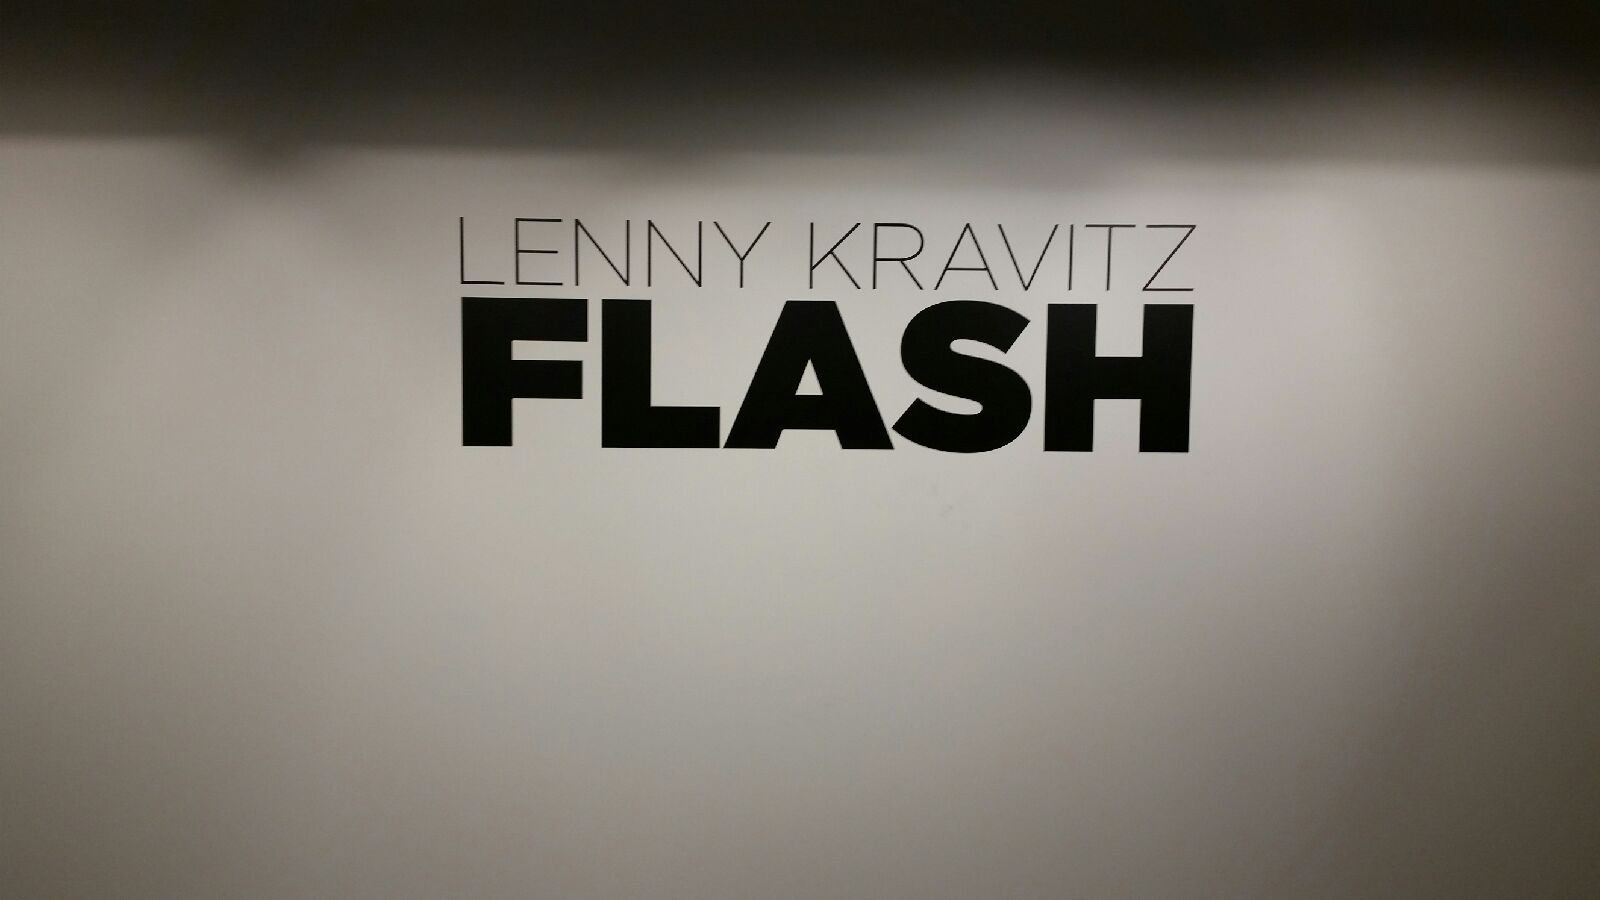 Flash By Lenny Kravitz - 6